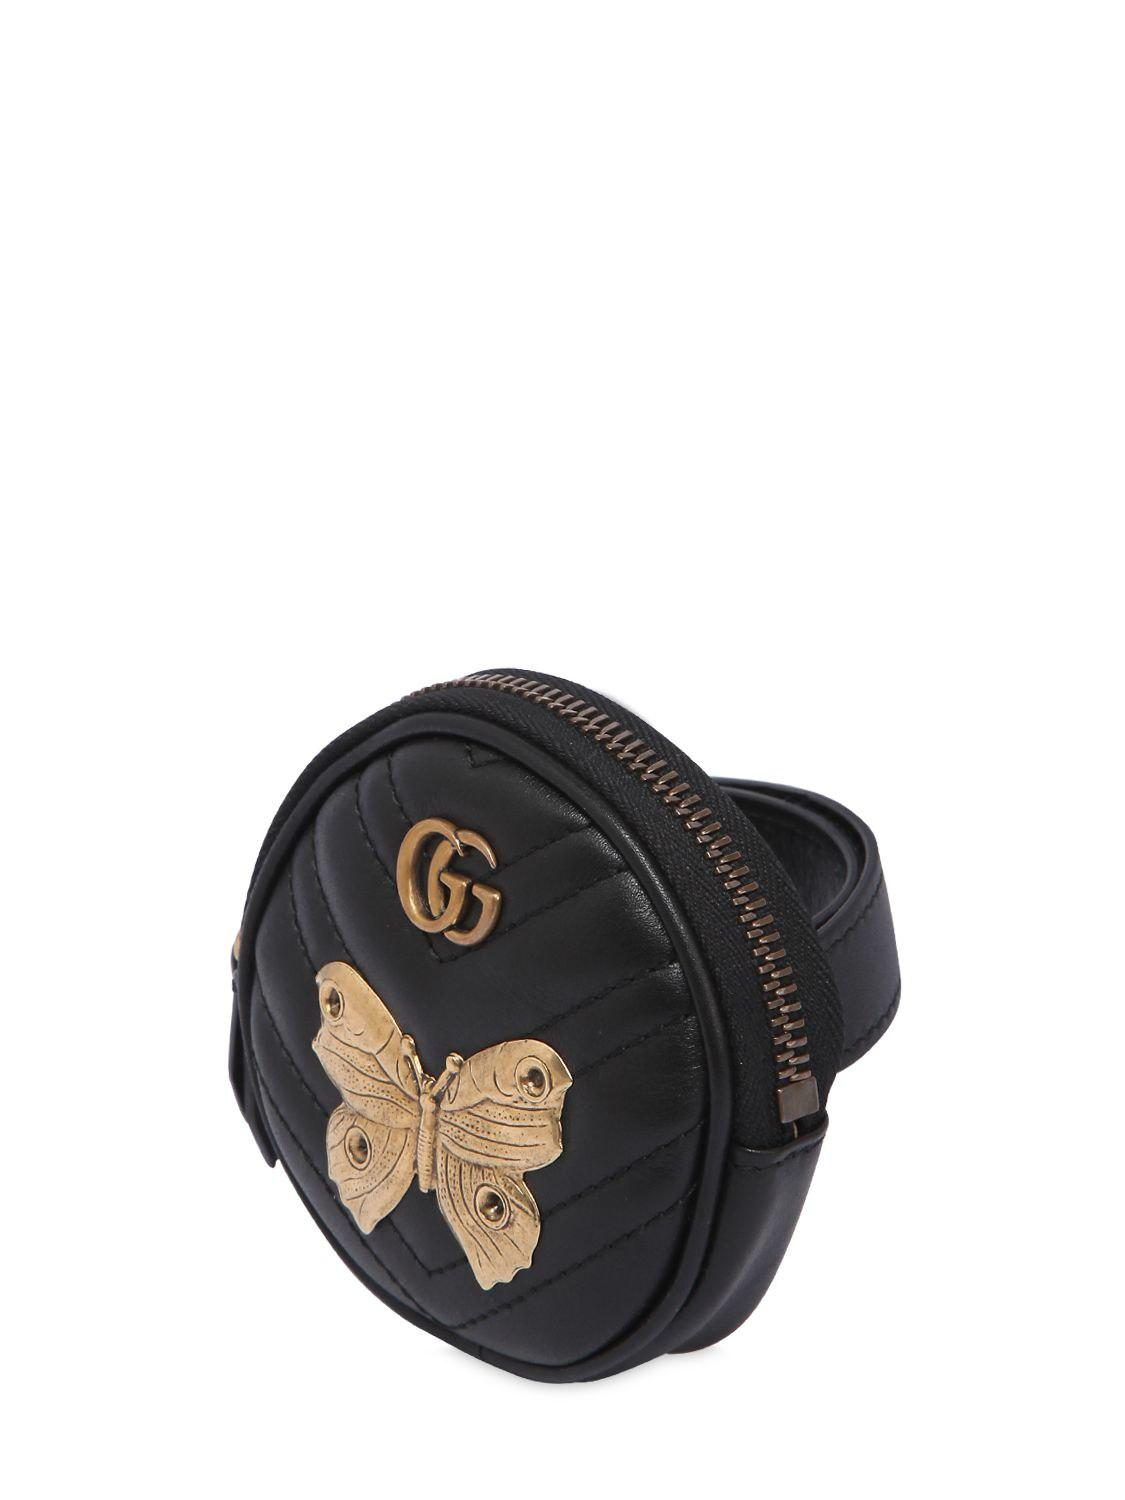 9ce793d497b7 Gucci Gg Marmont Coin Purse W/ Metal Appliqués in Black - Lyst